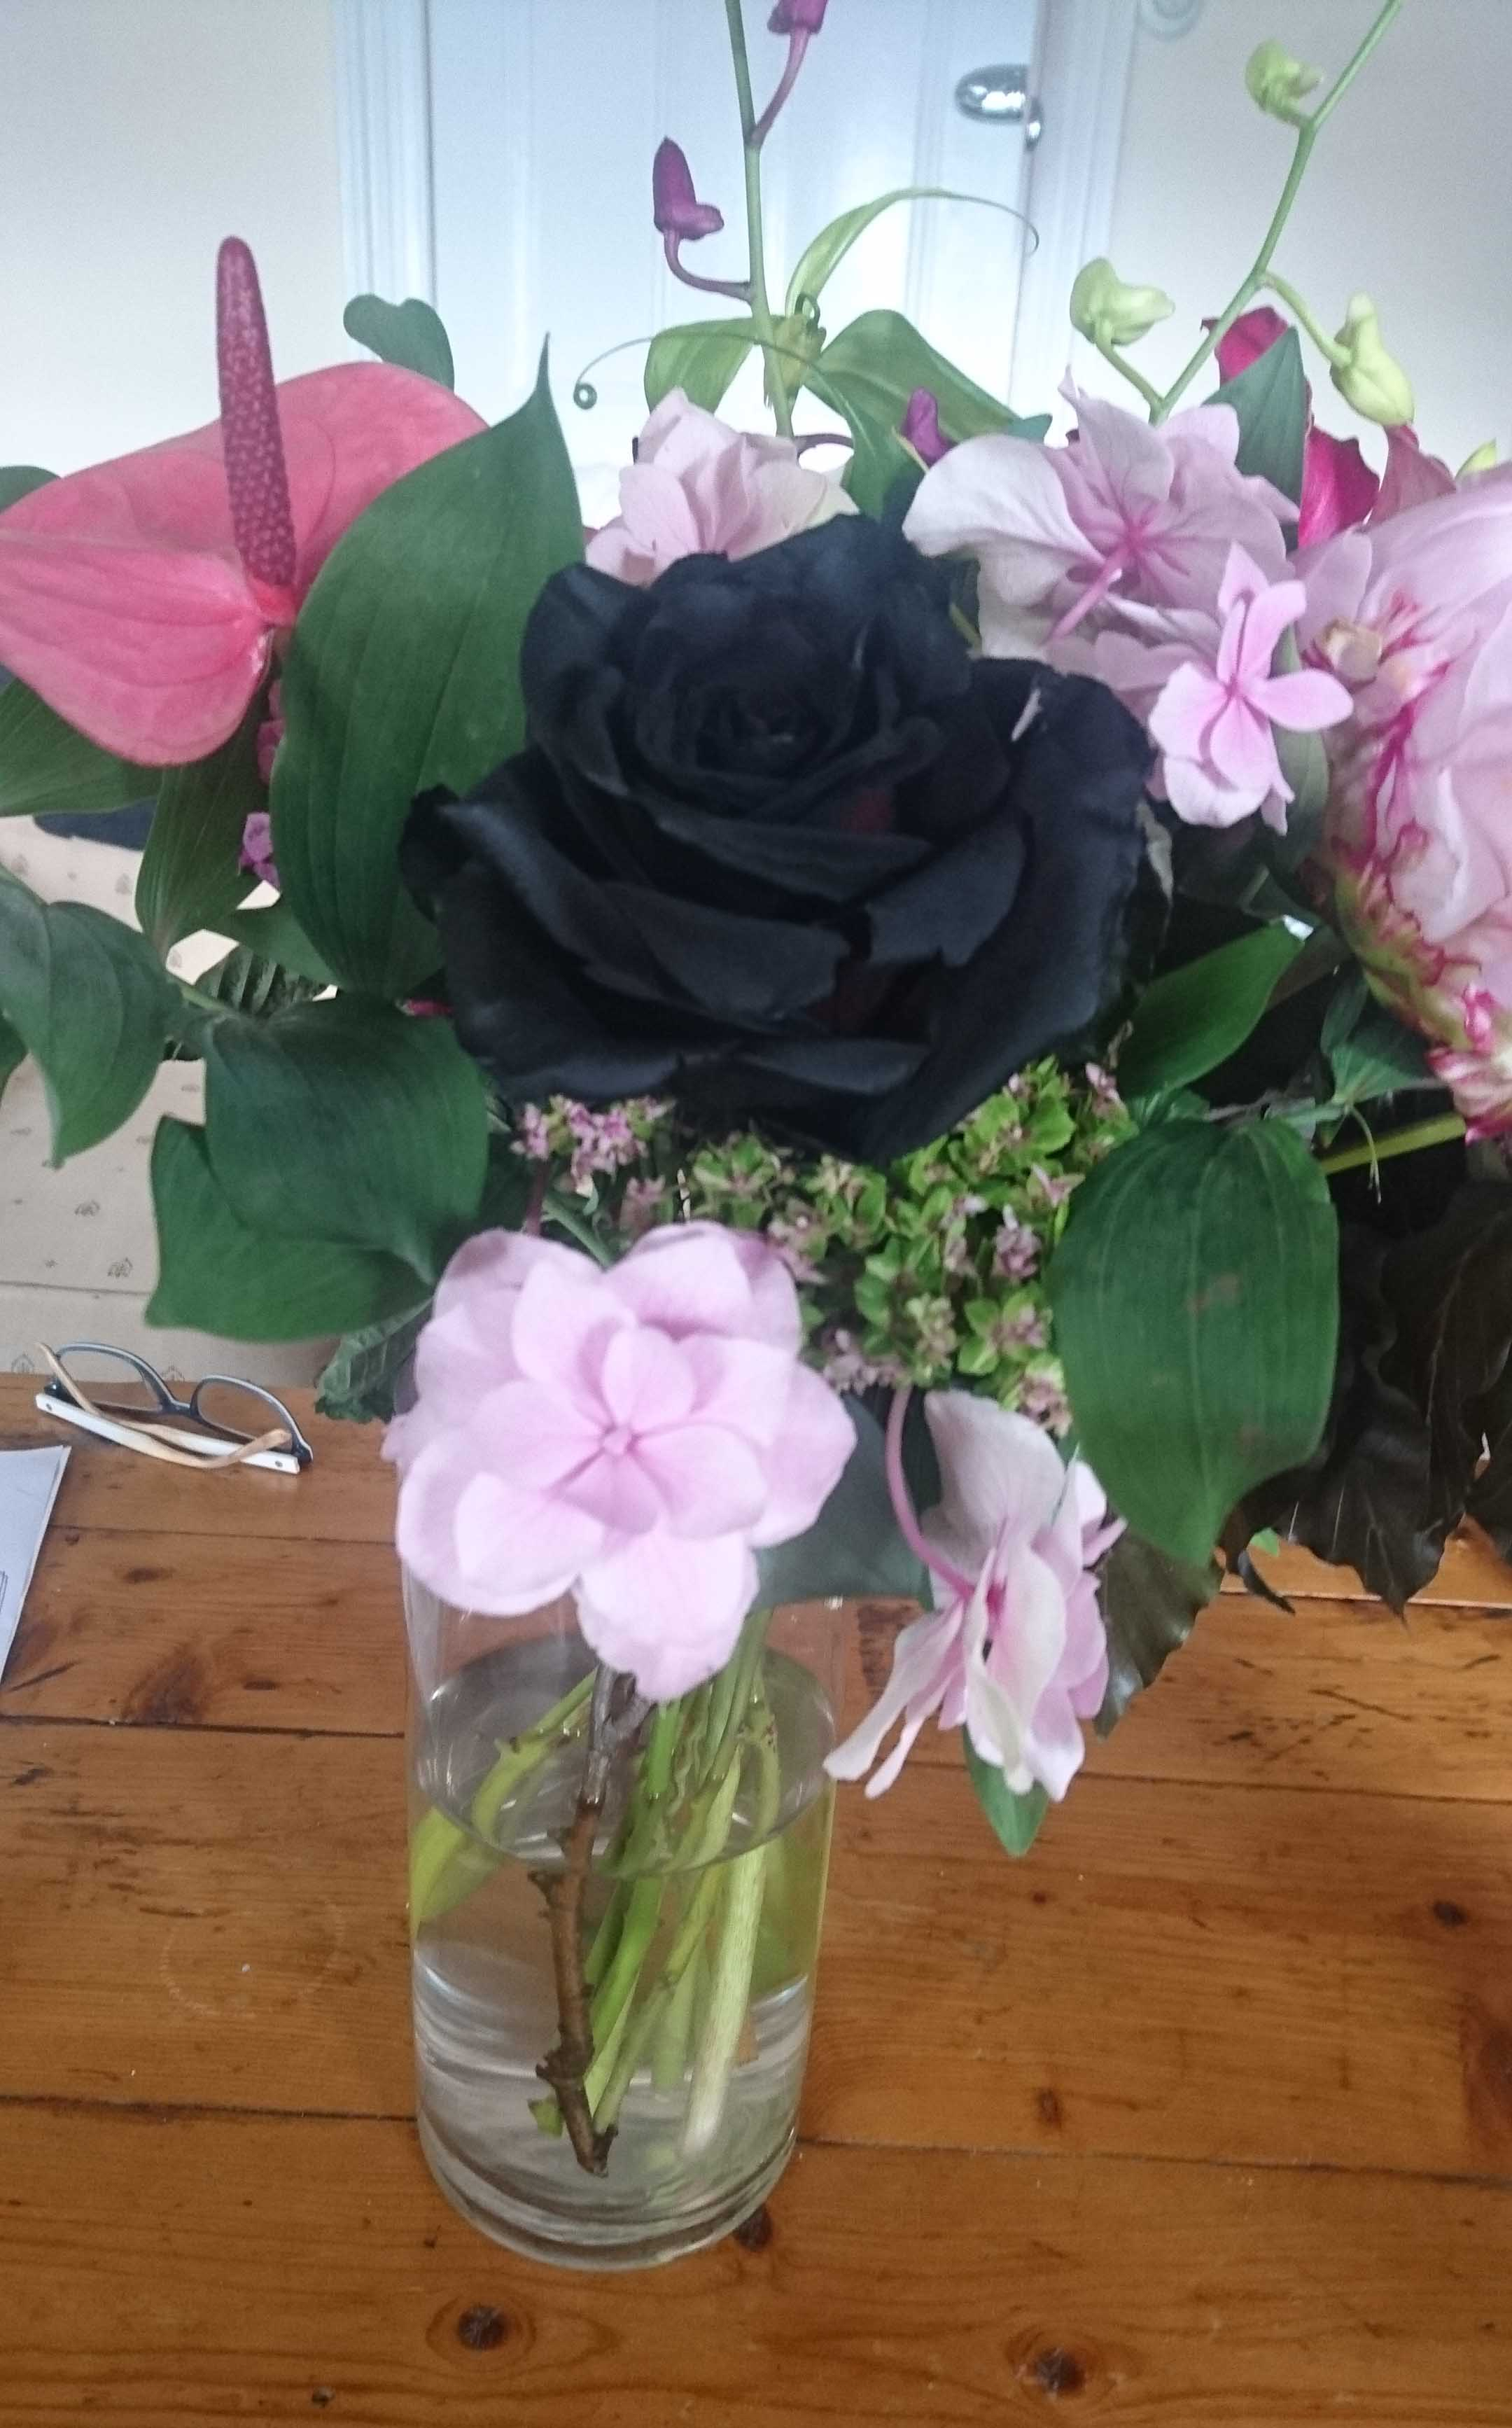 flowers from 'town house' geelong.  We'd been to see a French film in Geelong. A wet afternoon. And on returning a beautiful bouquet from Town House was on the door step. No better way to celebrate their beauty than to draw them.